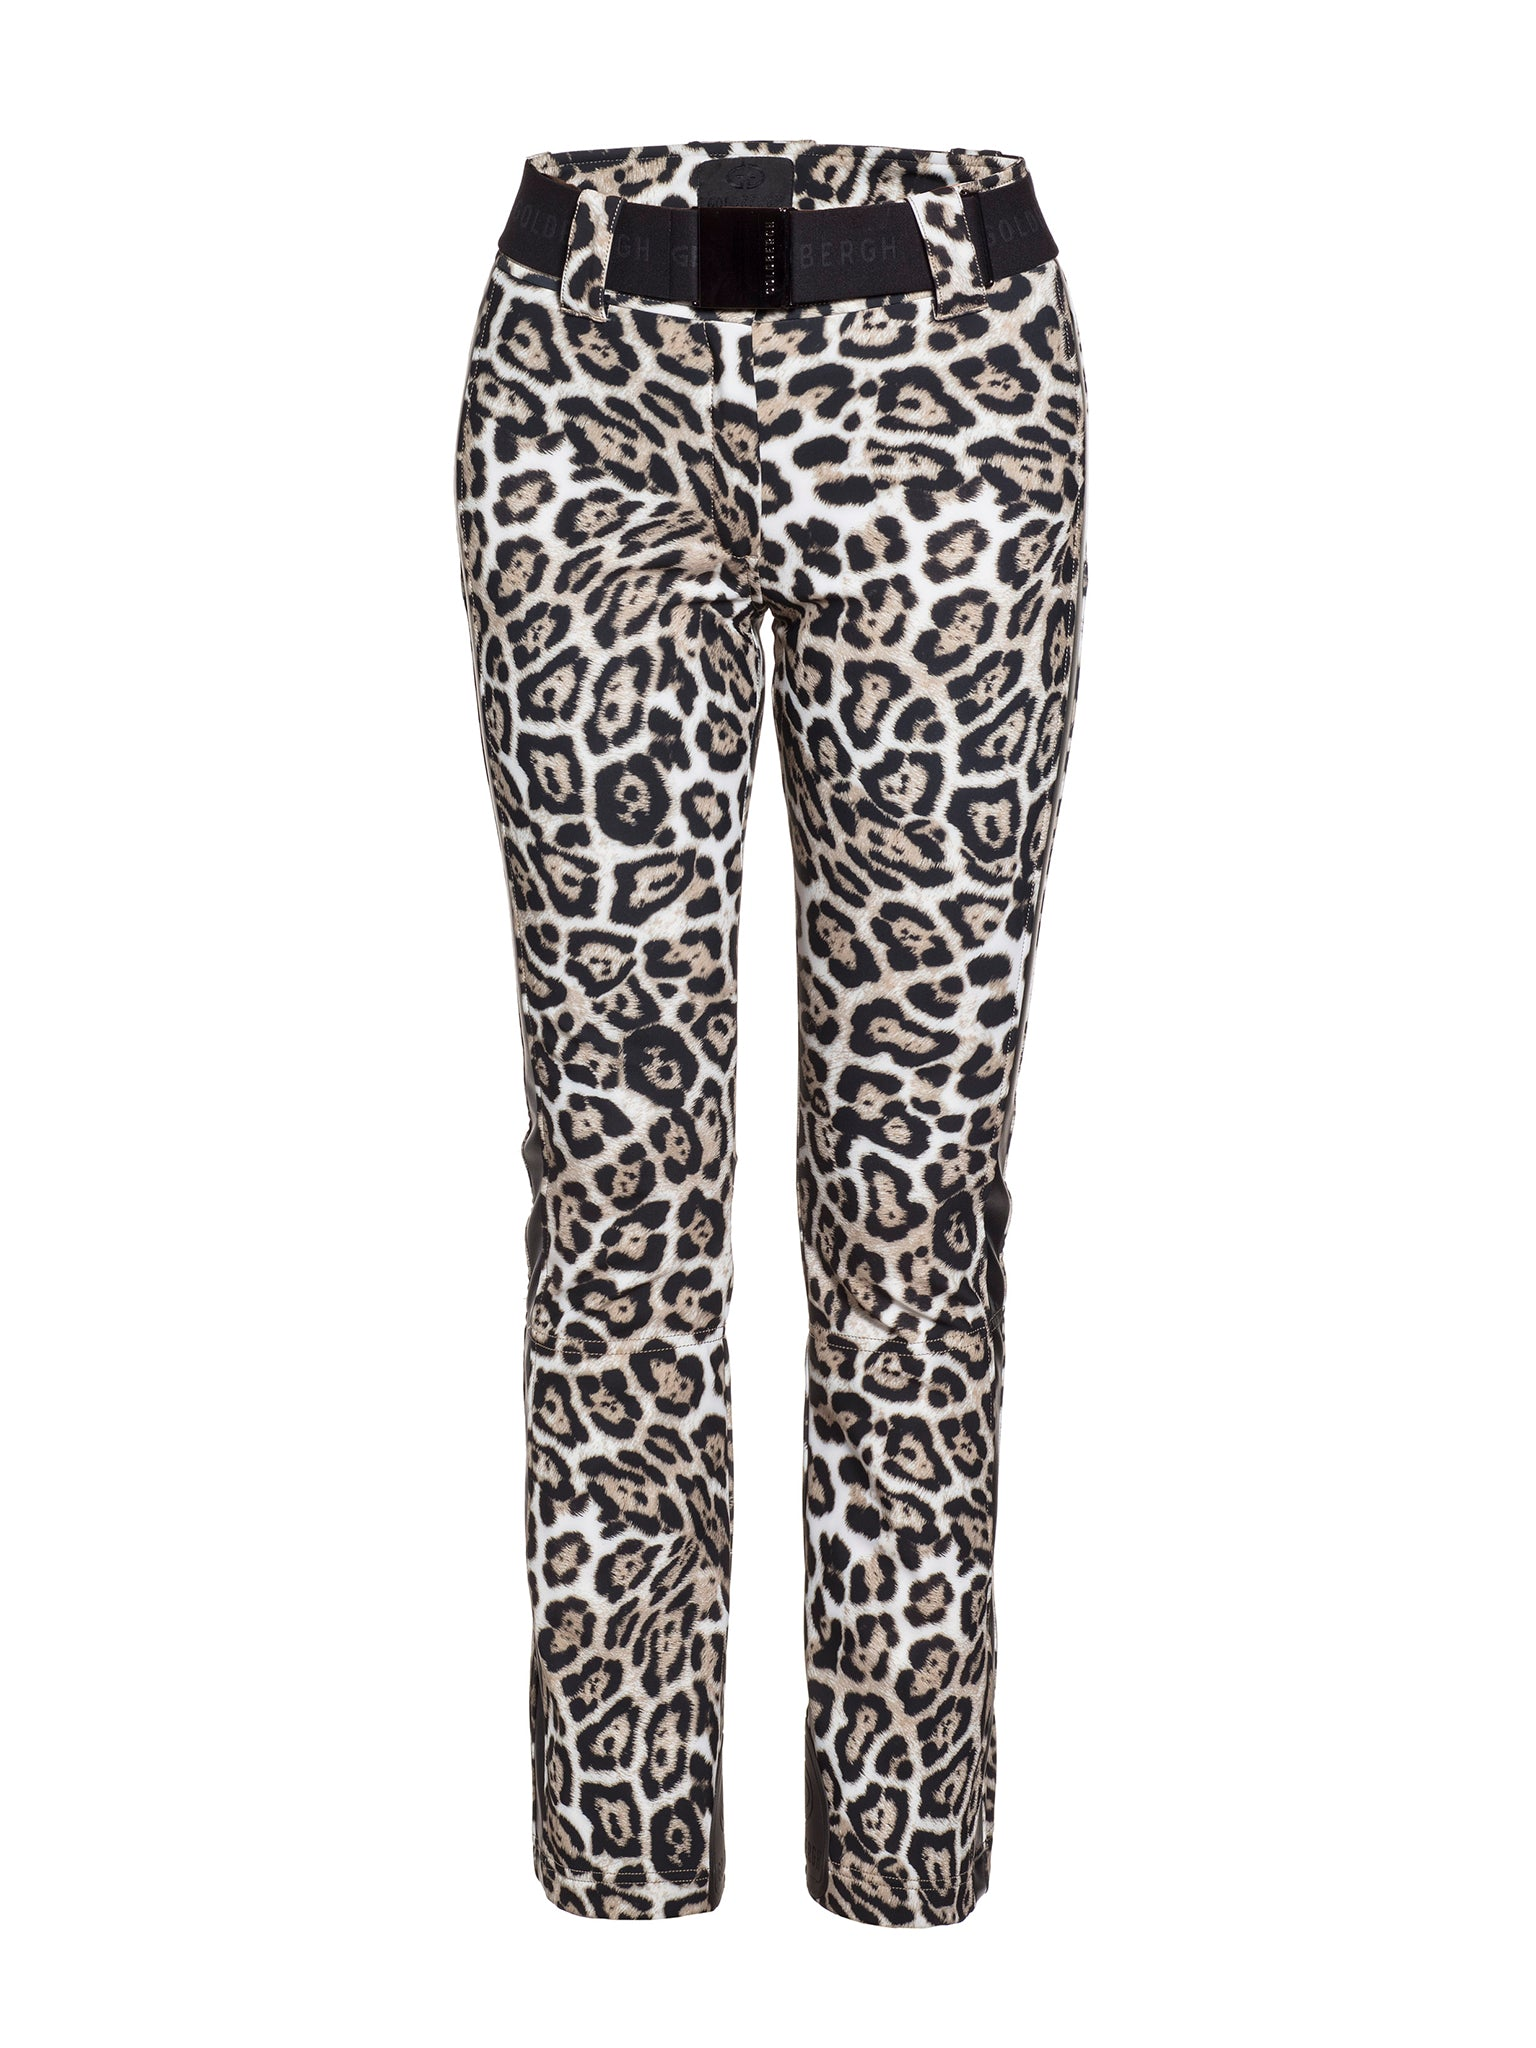 Roar Leopard Print Push Up ski pants - Leopard